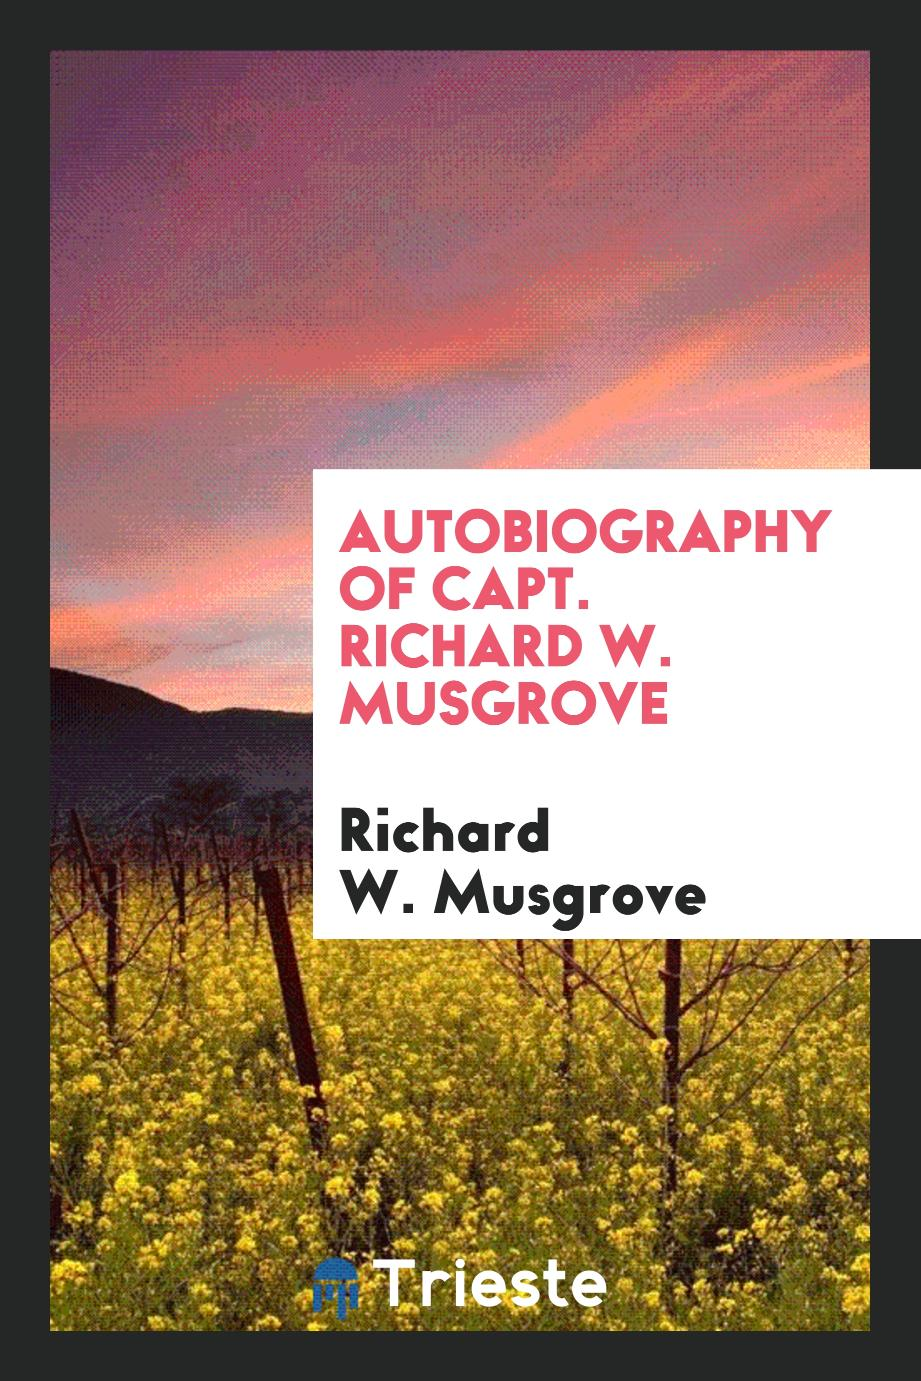 Autobiography of Capt. Richard W. Musgrove